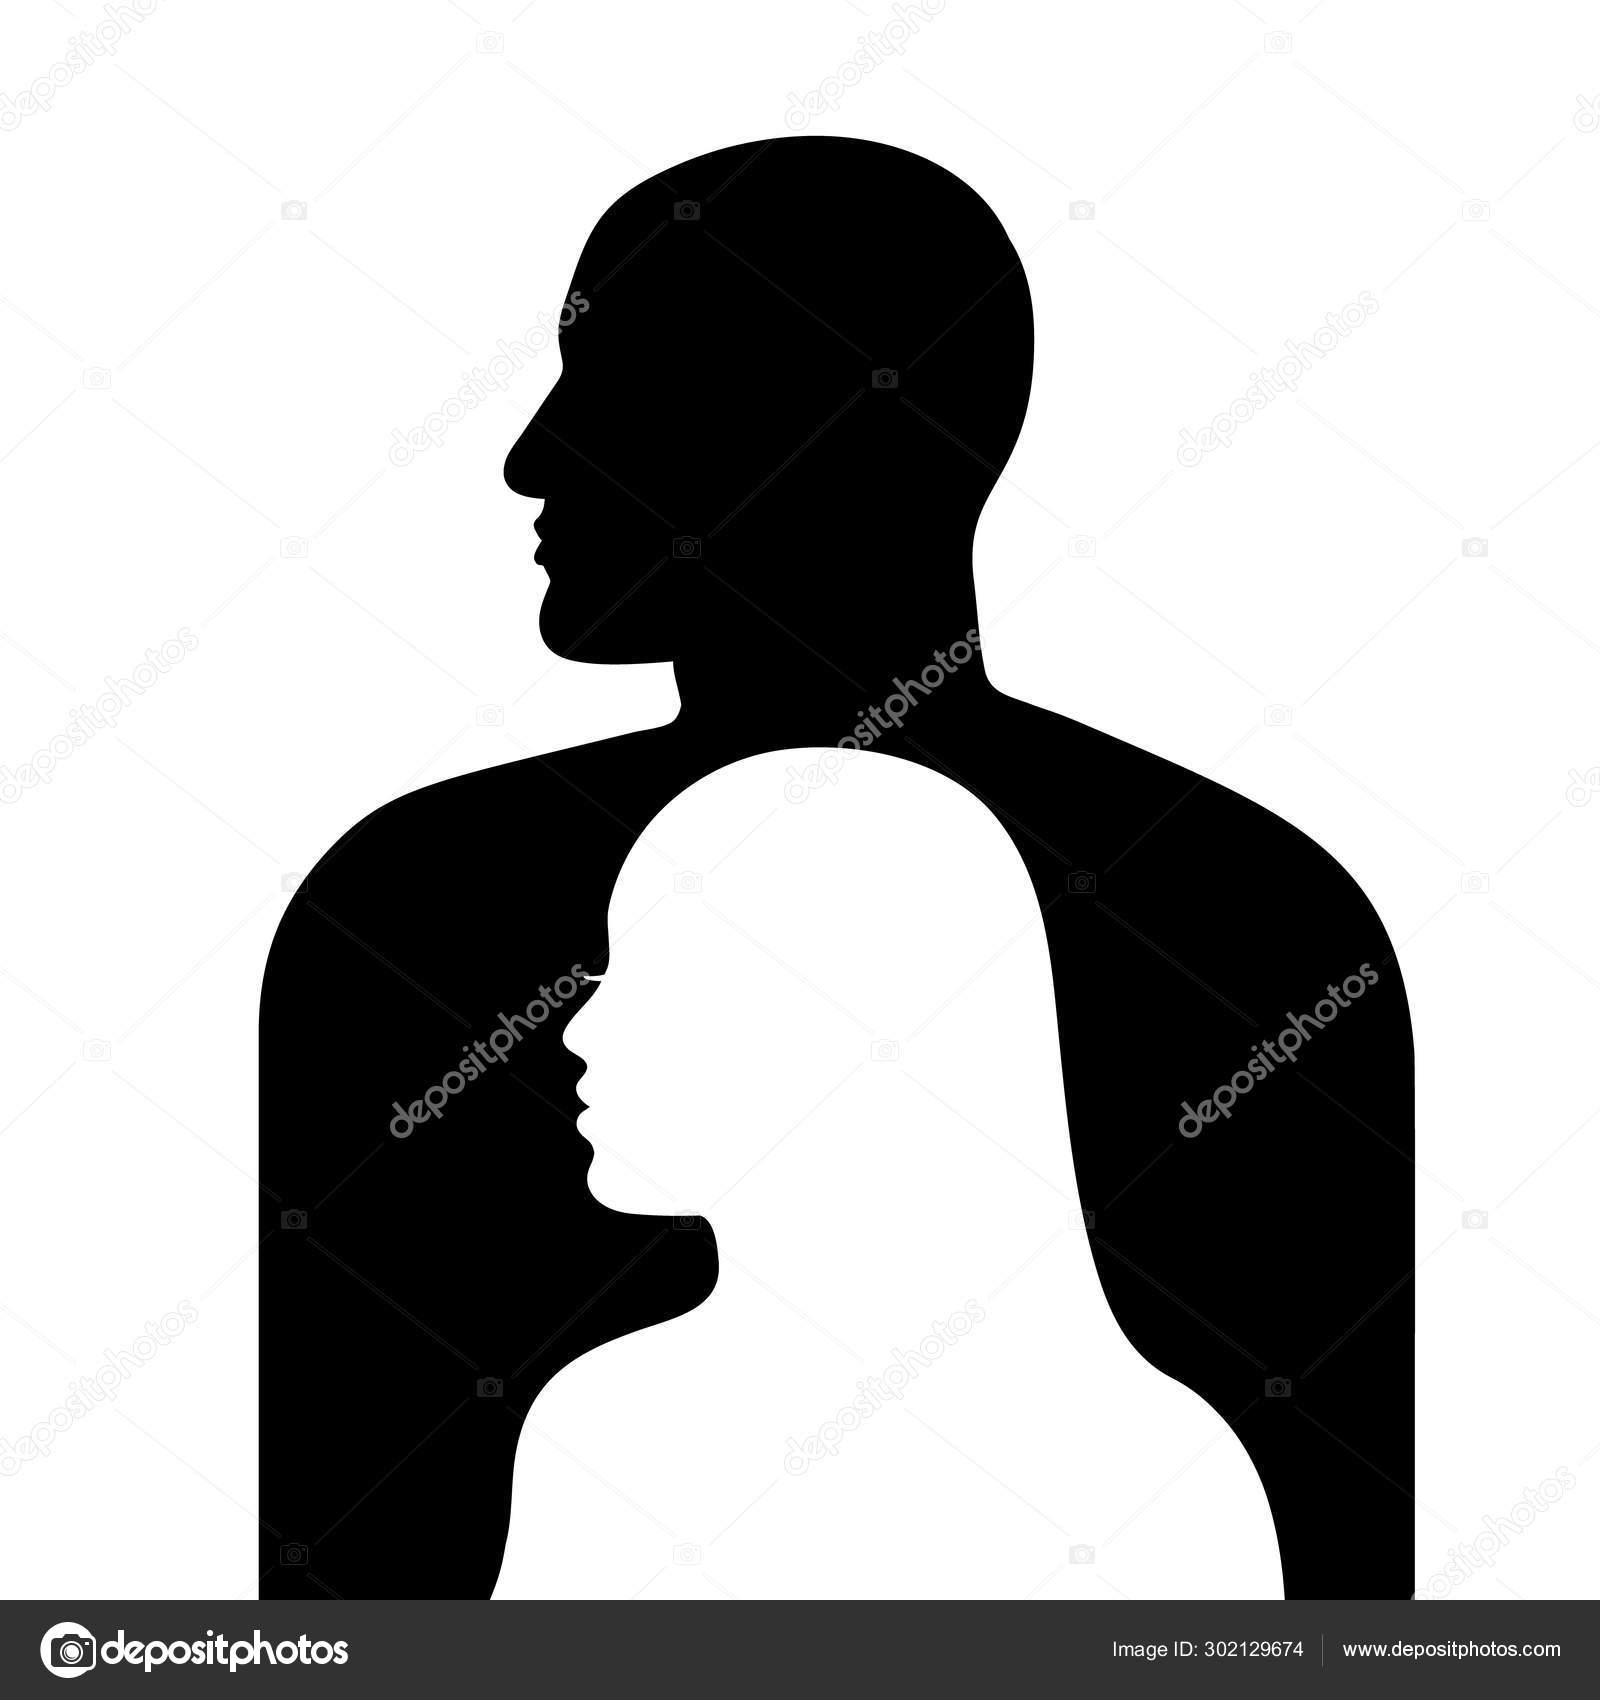 Female Face In Profile On A Background Of Male Face Silhouette Man And Woman Silhouettes Looking In Same Directions Vector Illustration Isolated On White Background Stock Vector C Uncleleo 302129674